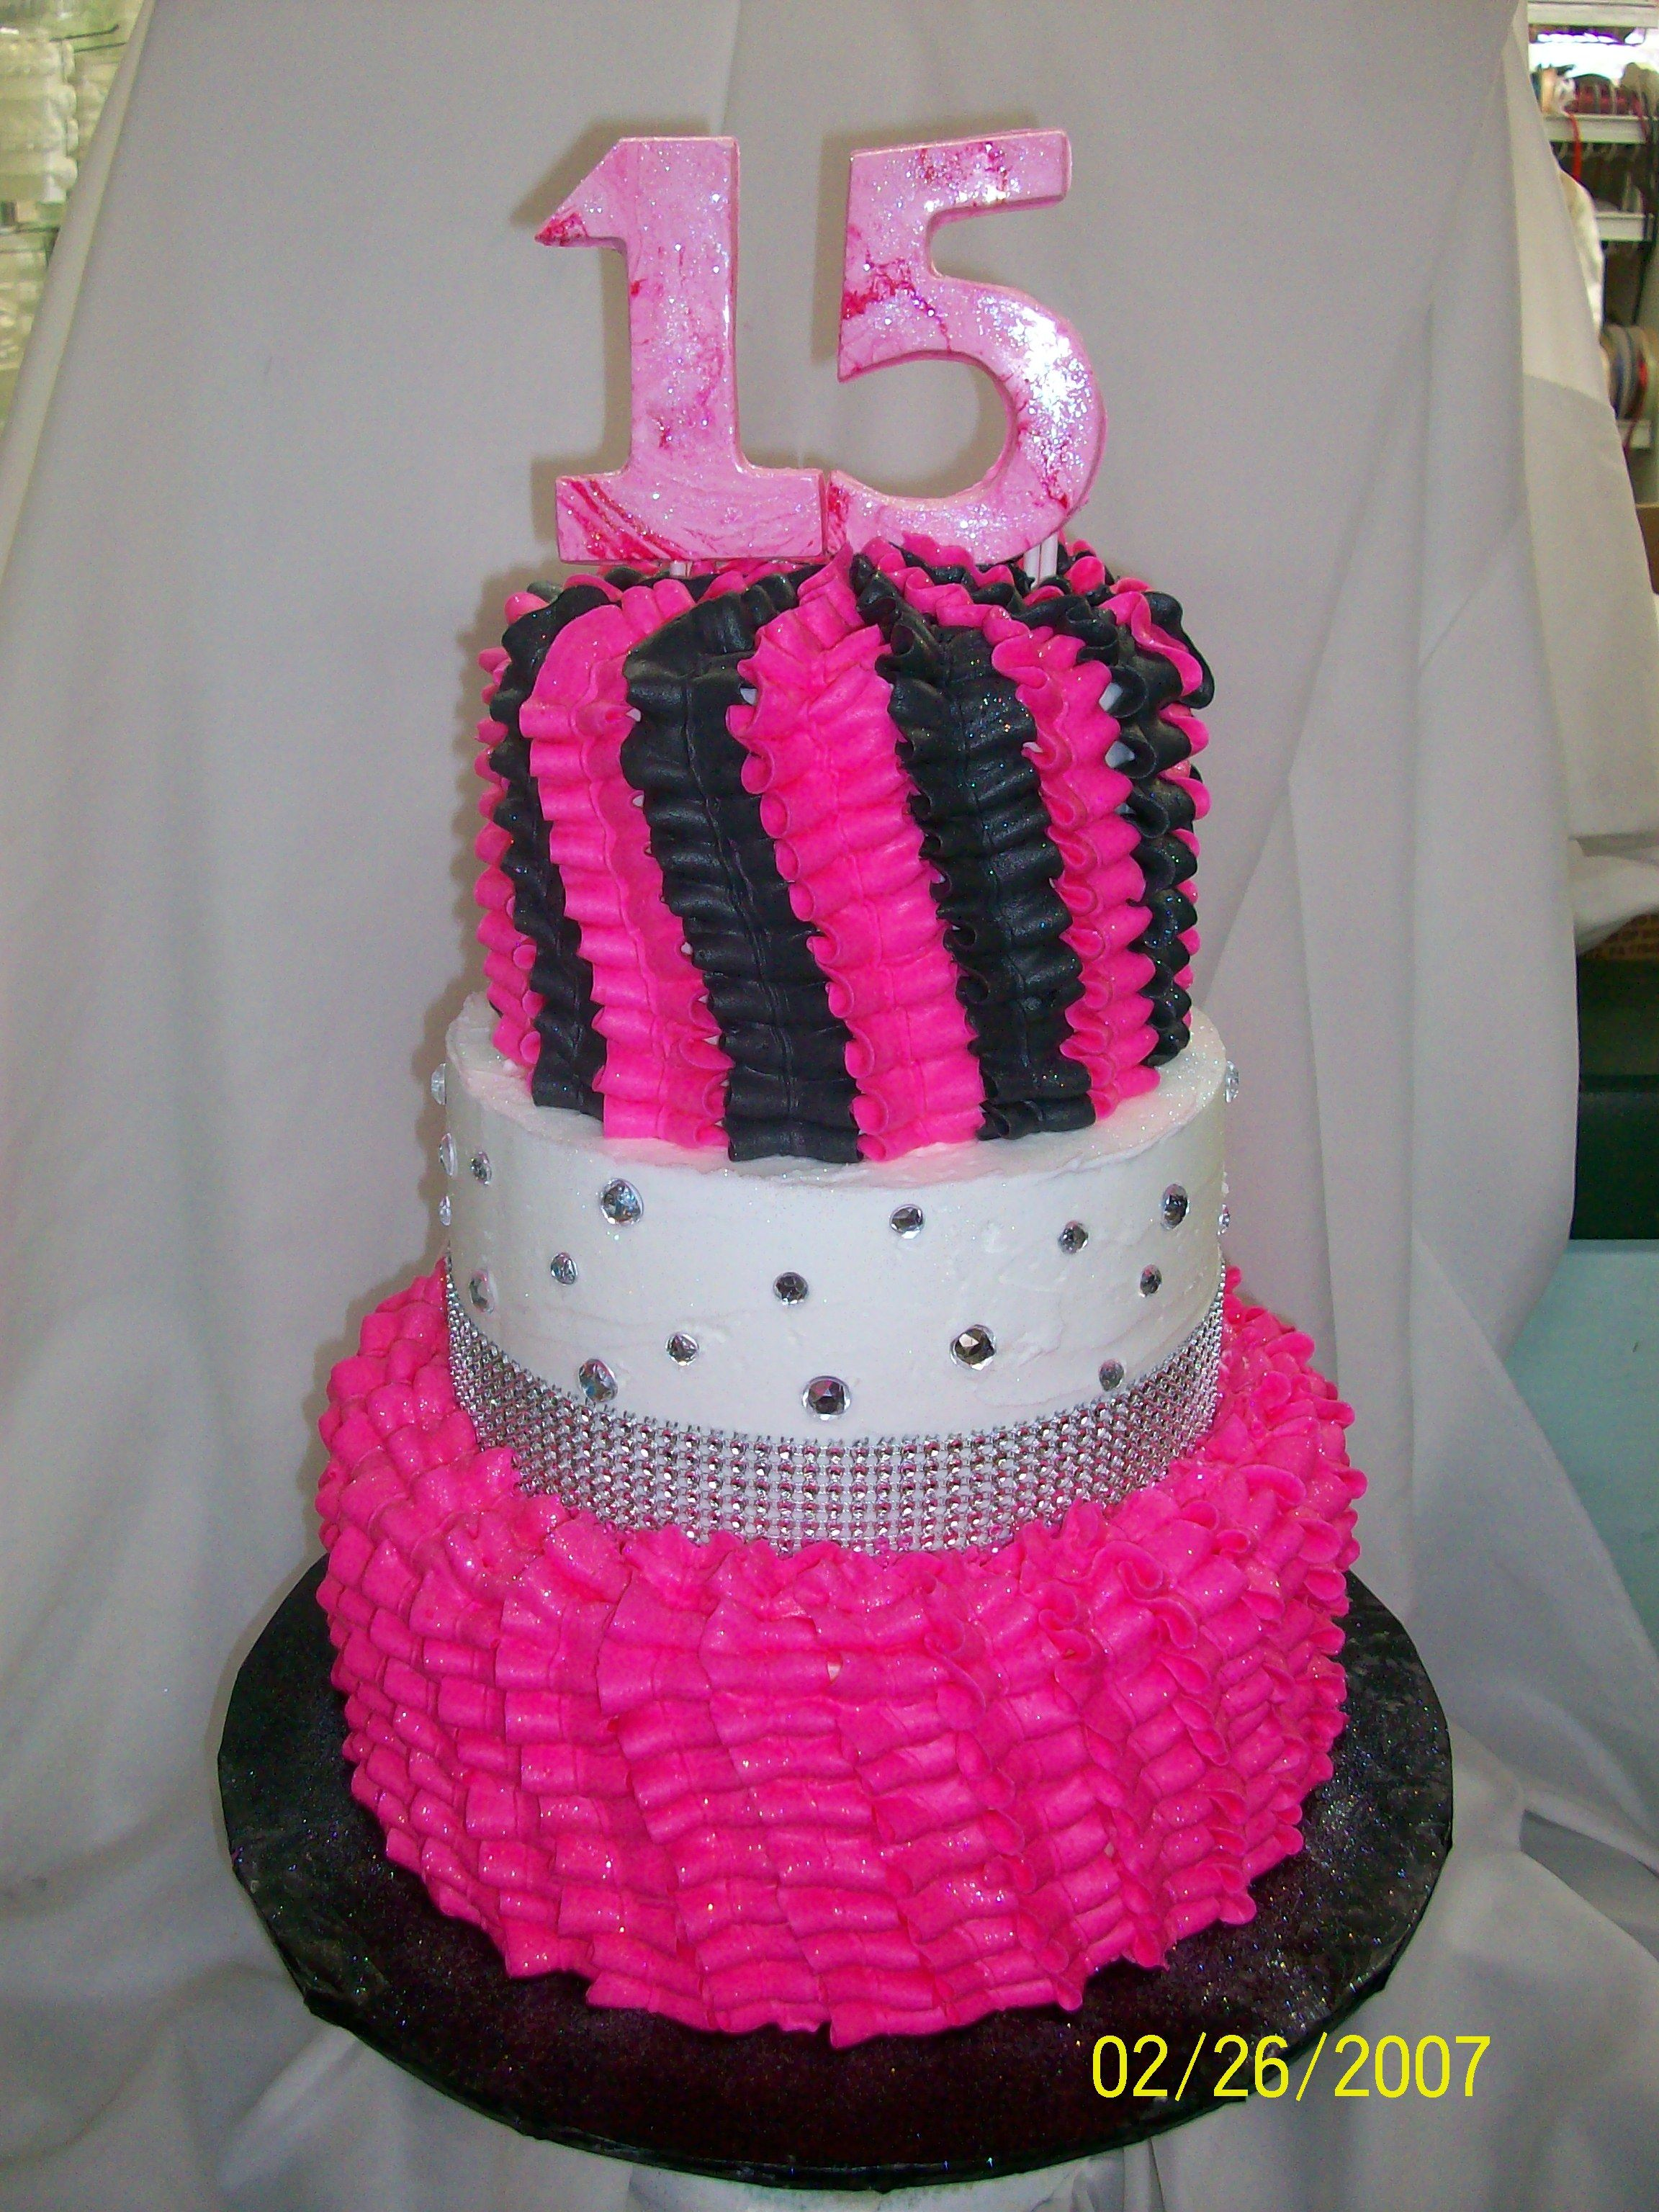 15th Birthday Cake Hot Pink And Black Ruffles In A Twist With